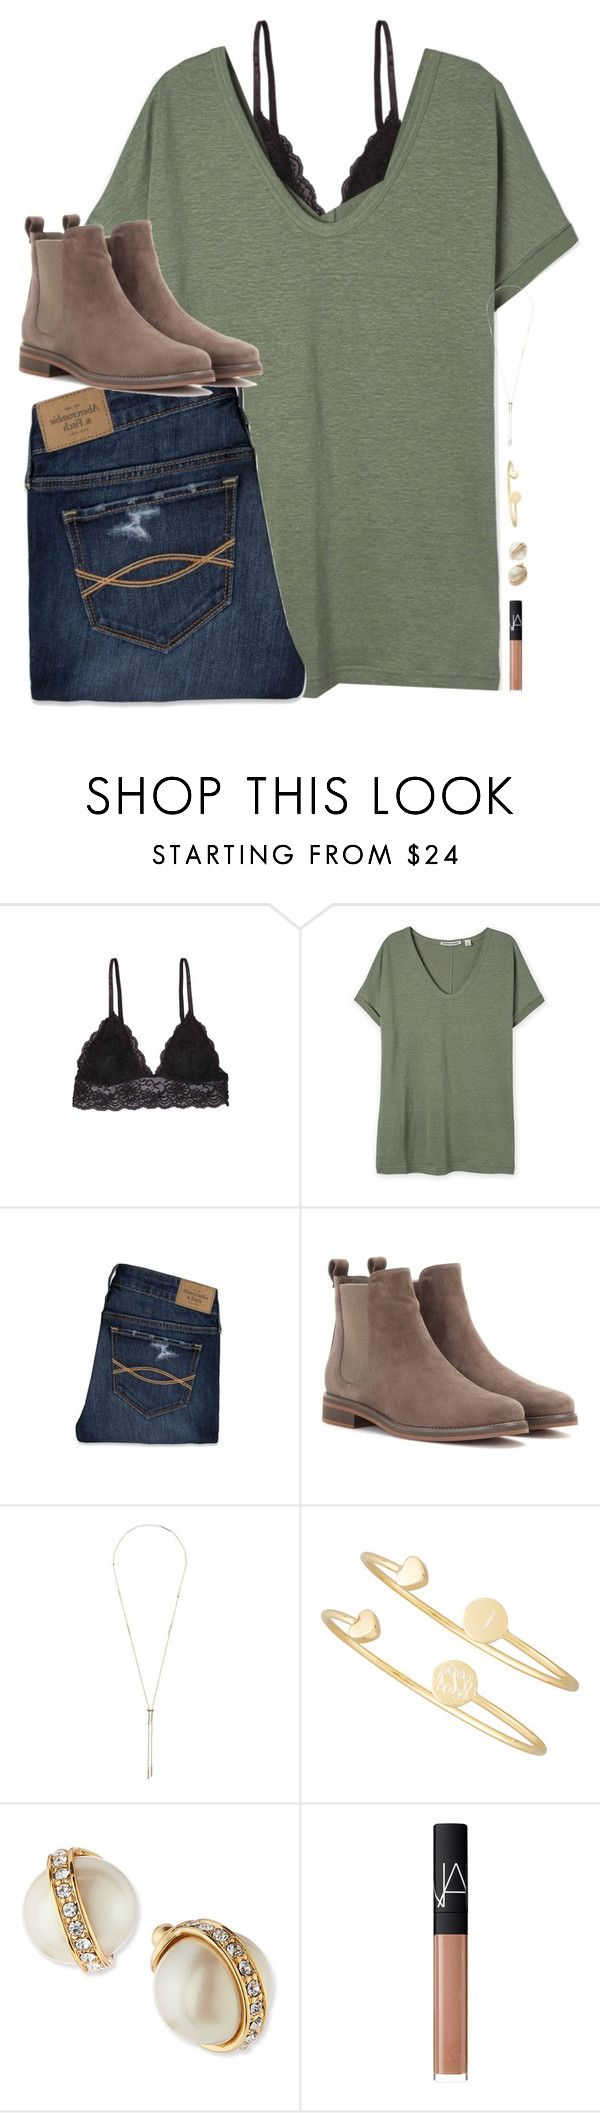 """""""{ set goals that scare &I excite you at the same time! }"""" by shannaolo ❤ liked on Polyvore featuring Humble Chic, Abercrombie & Fitch, Loro Piana, Kendra Scott, Sarah Chloe, Kate Spade, NARS Cosmetics, women's clothing, women and female"""